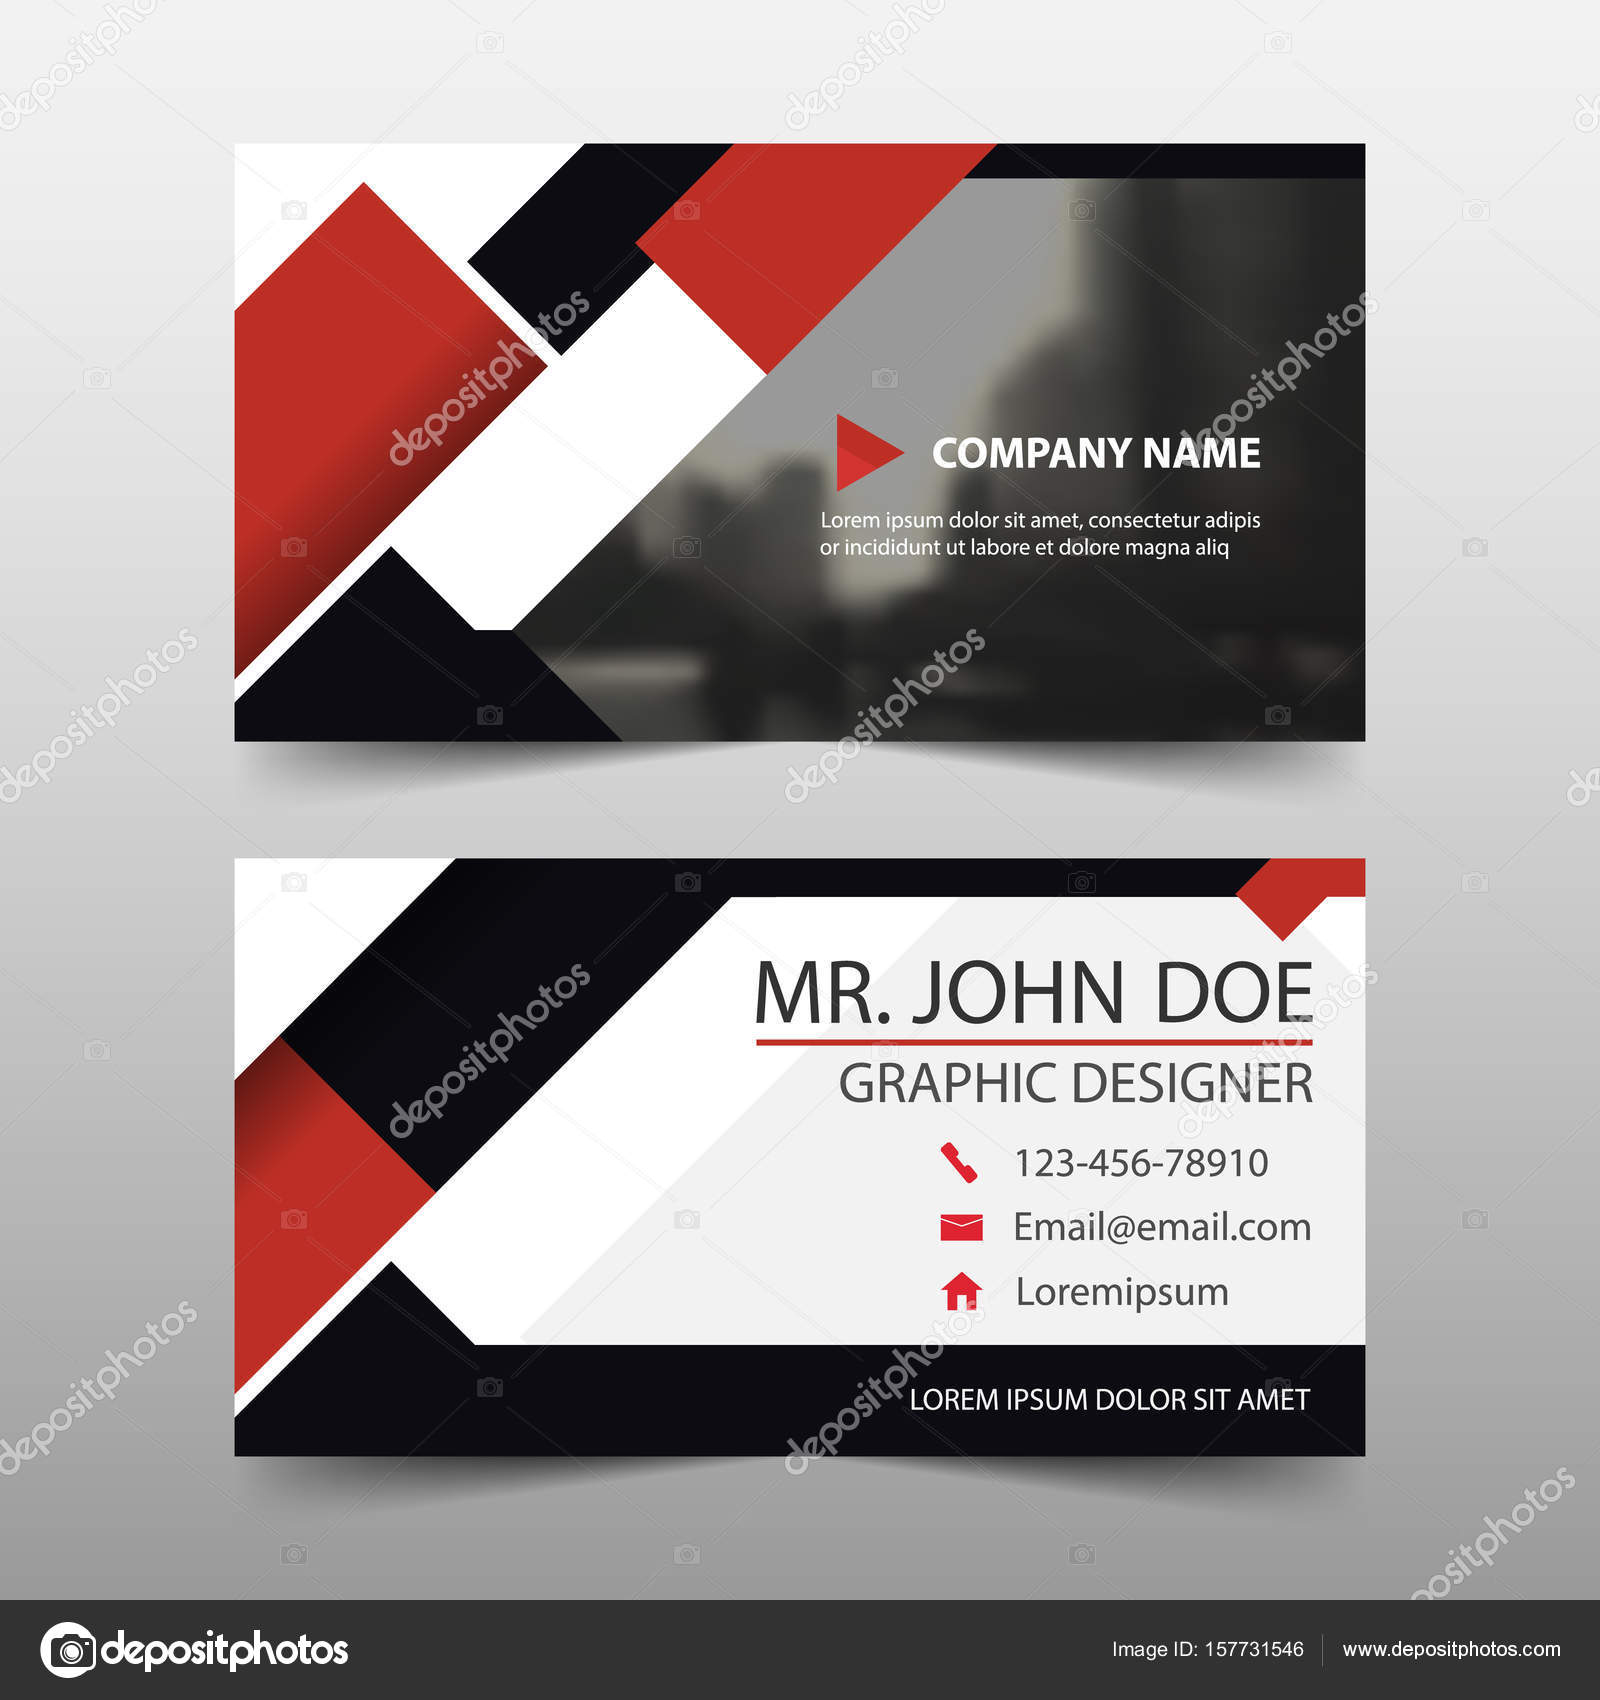 Red square corporate business card name card template horizontal red square corporate business card name card template horizontal simple clean layout design template colourmoves